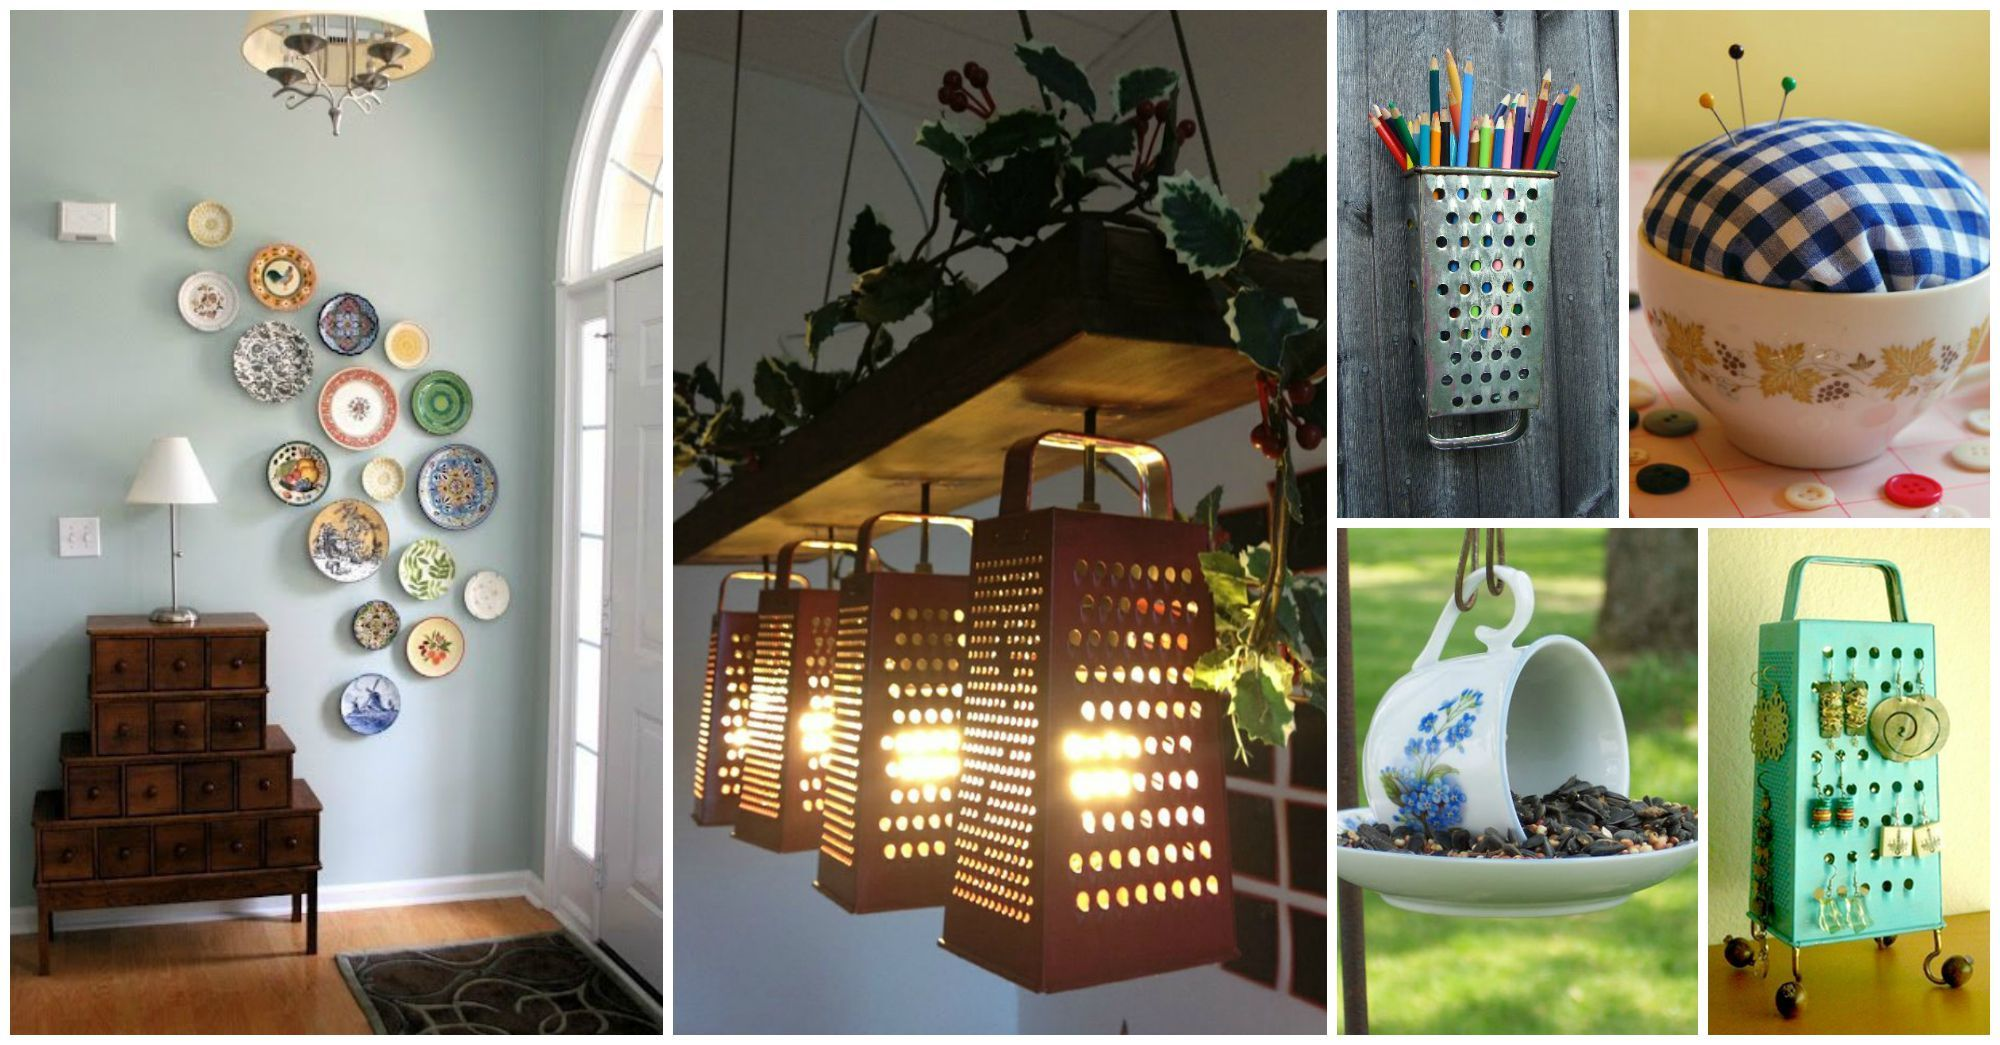 Living Room Wall Ideas 15+ Ways To Repurpose Your Old Kitchen Utensils And Tools